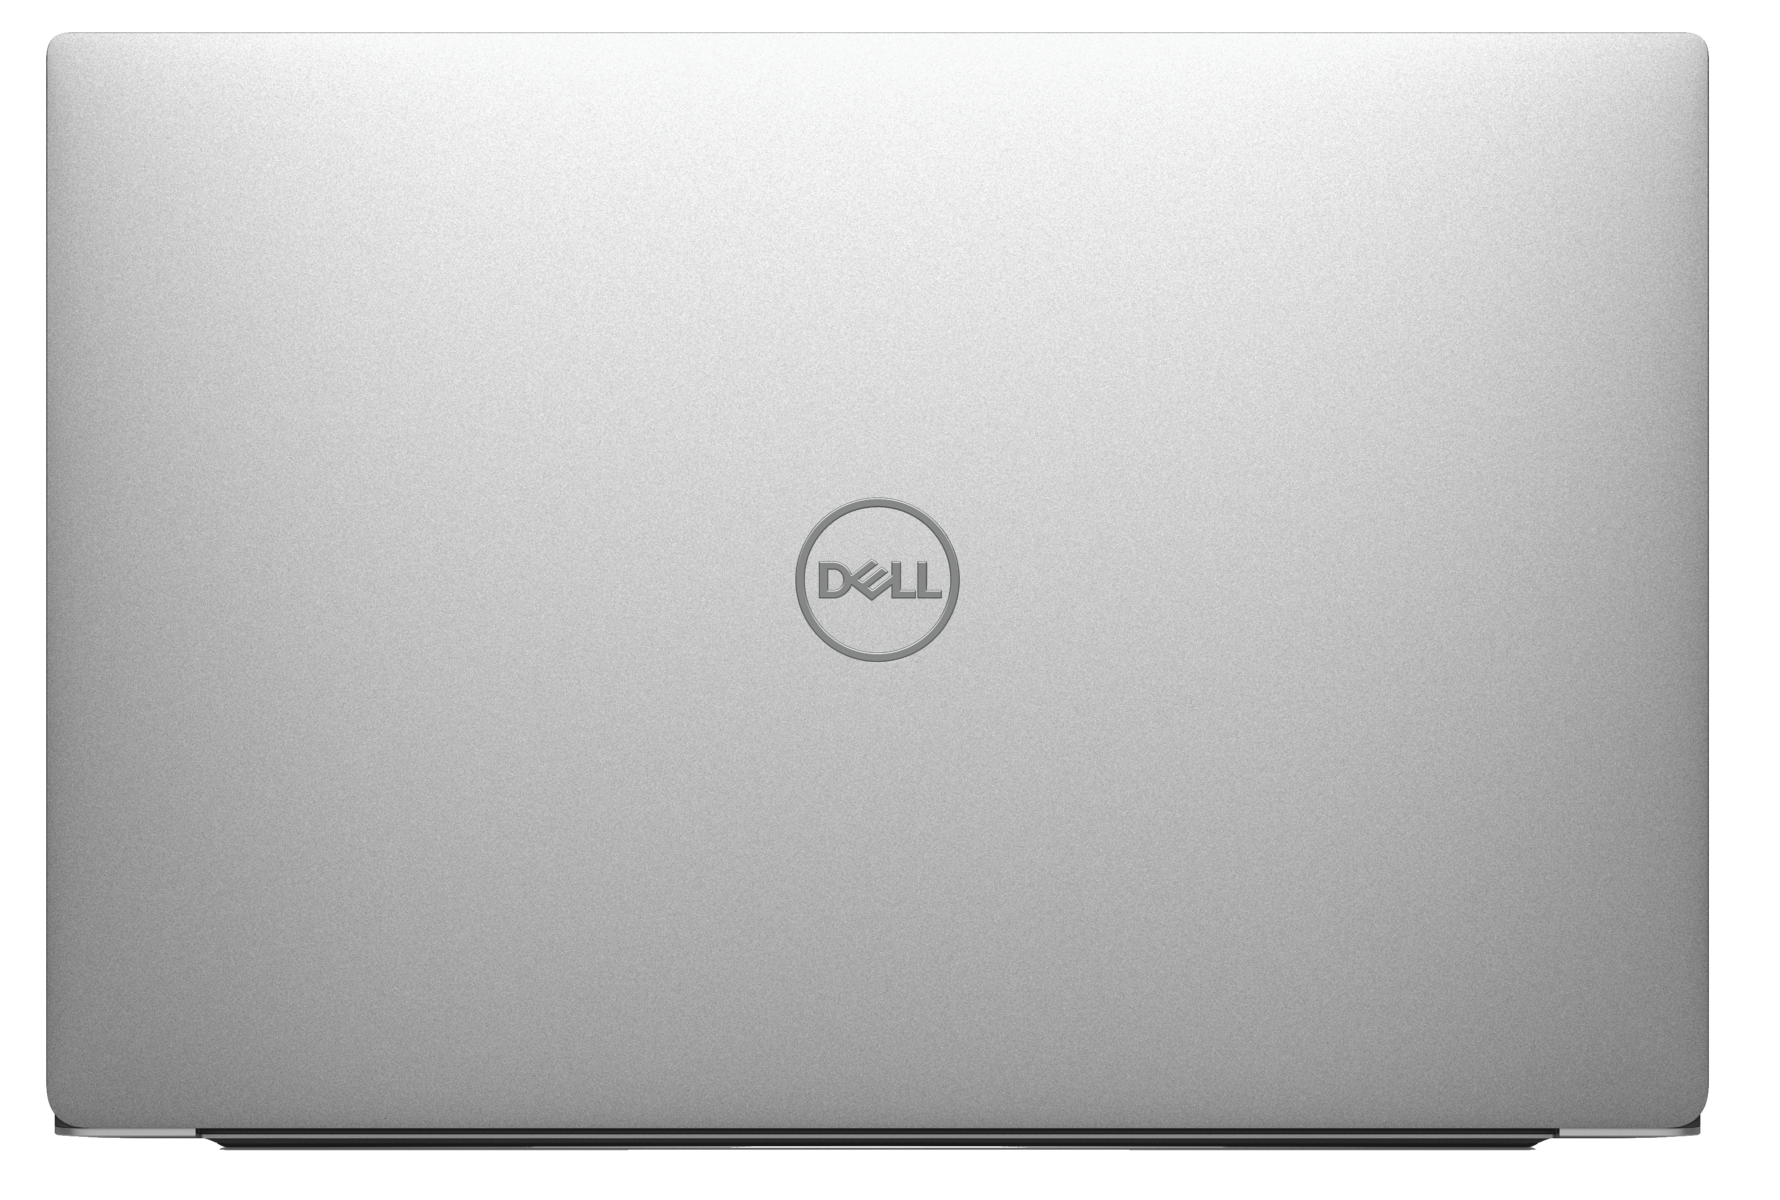 The Dell XPS 15 9570 is here and is more powerful than ever